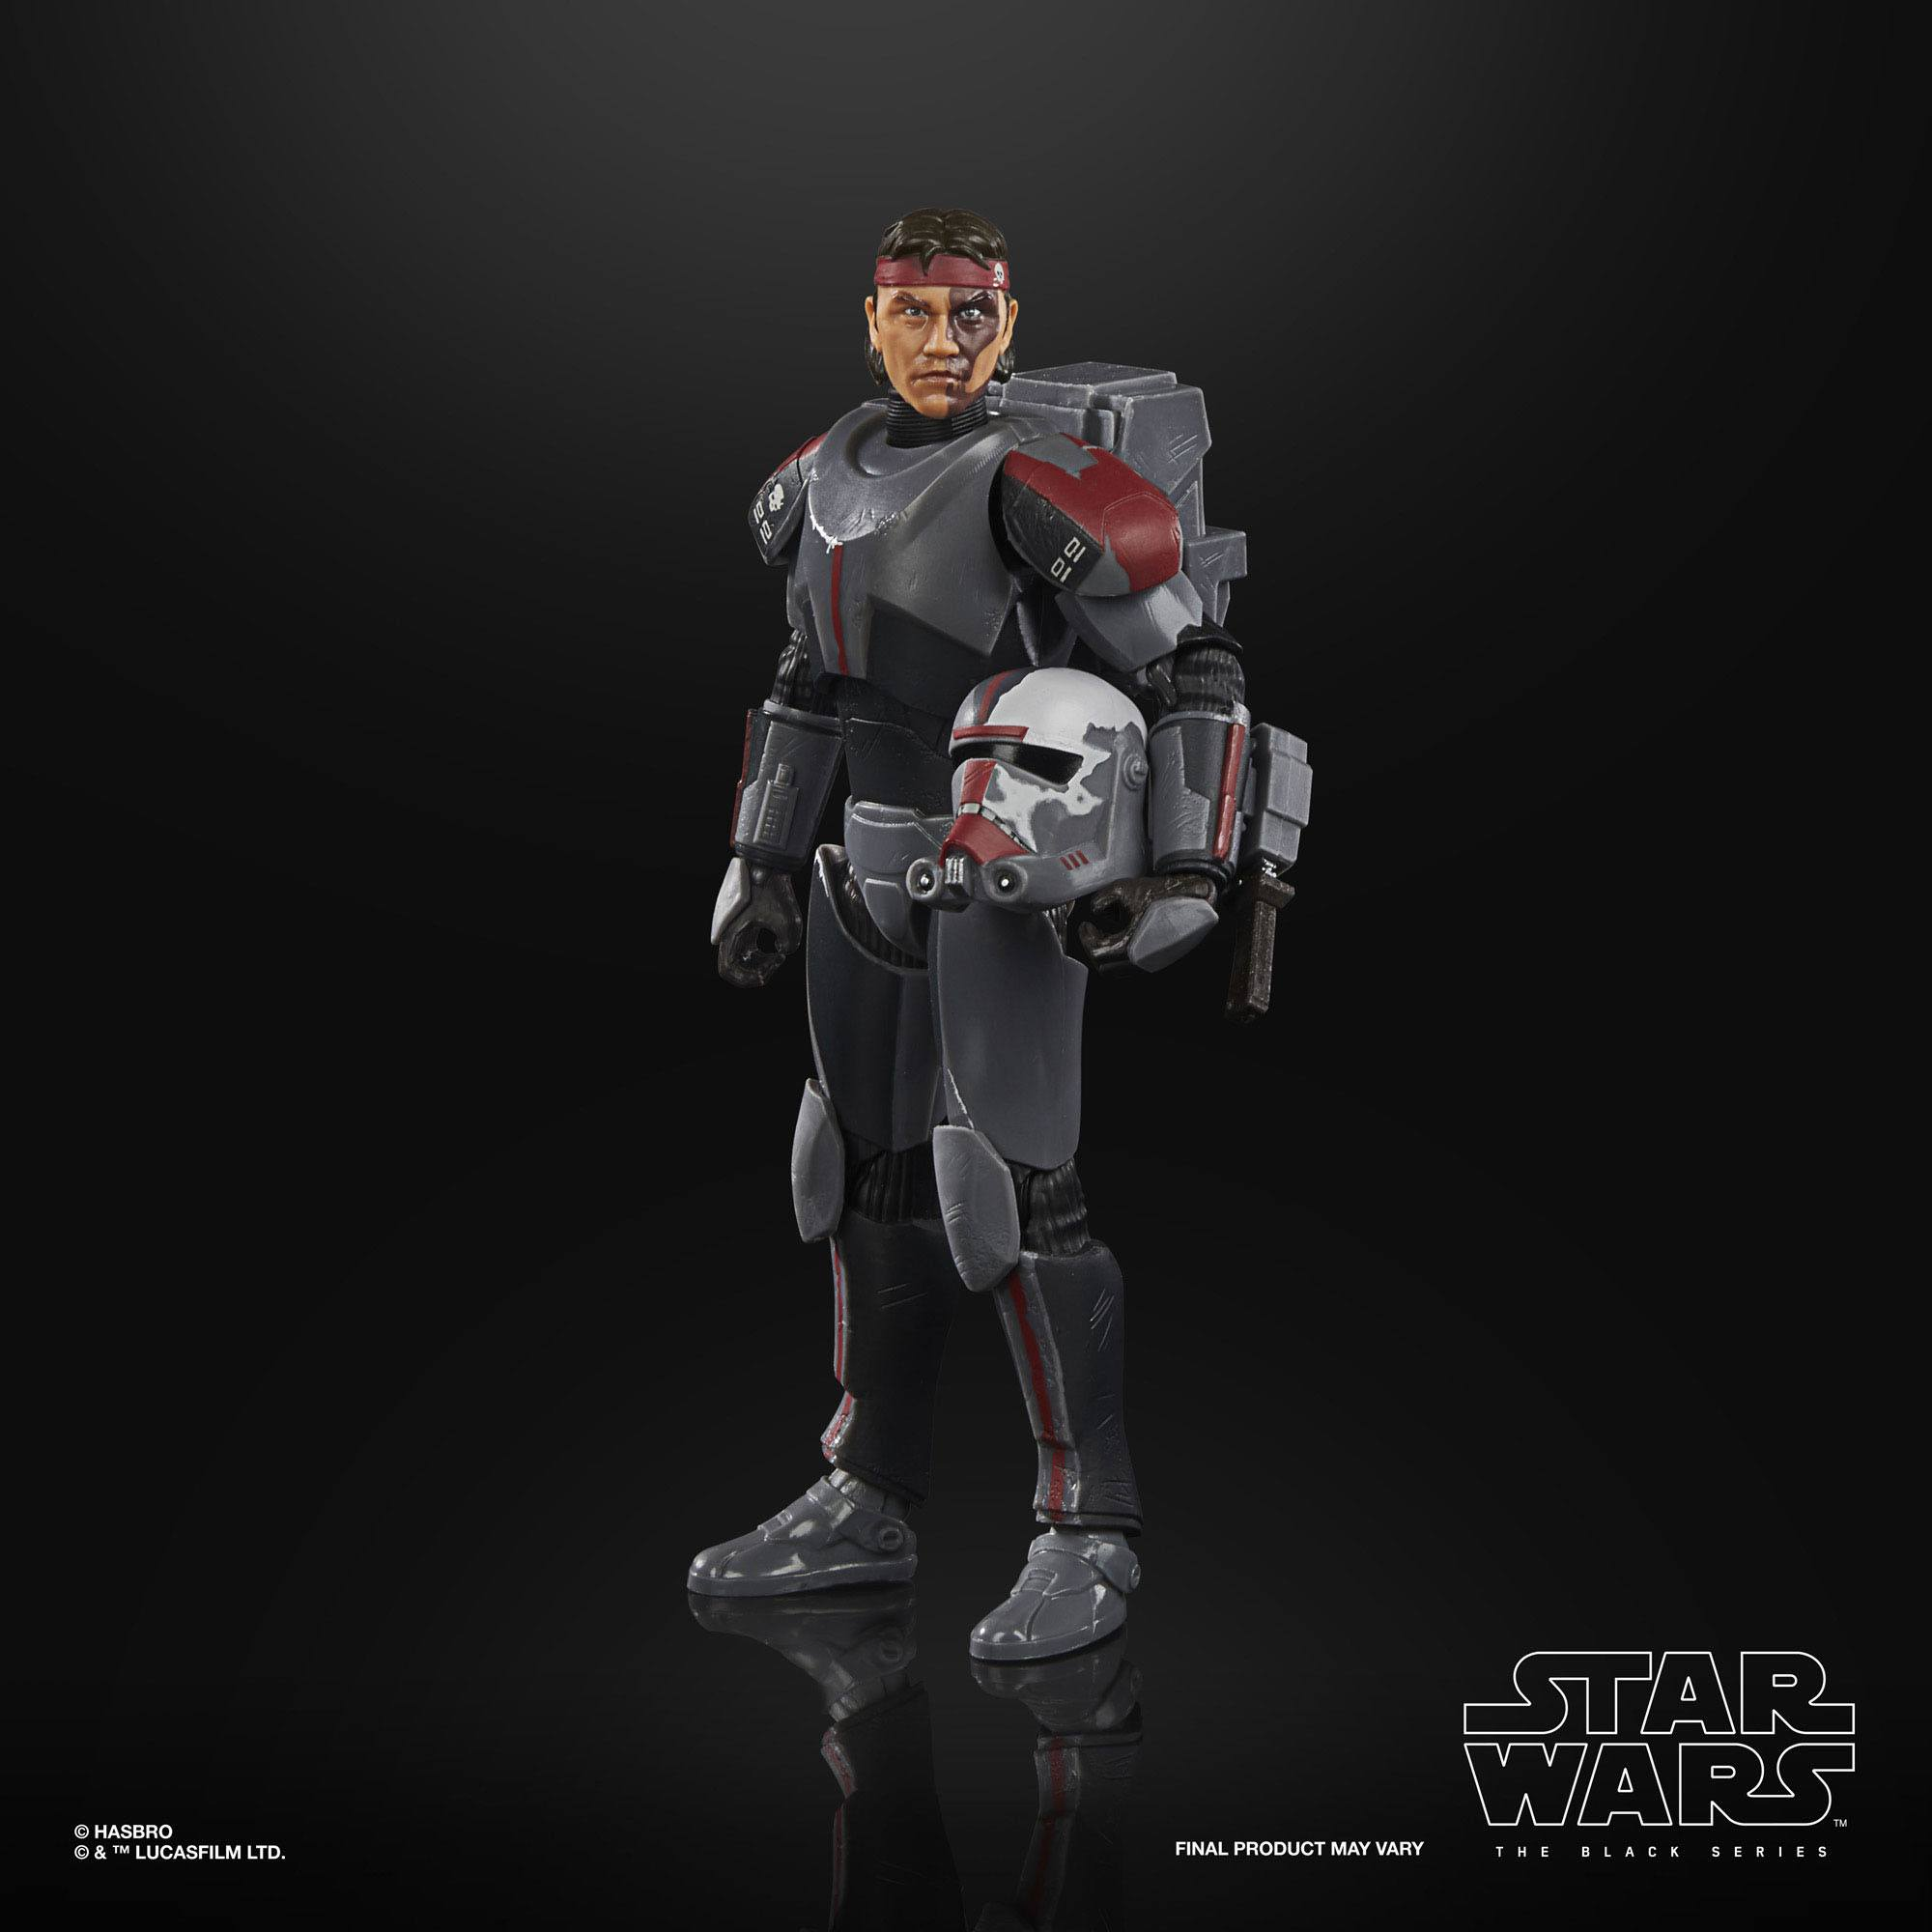 Star Wars The Black Series Bad Batch Hunter 15cm Actionfigur F1859 5010993813353